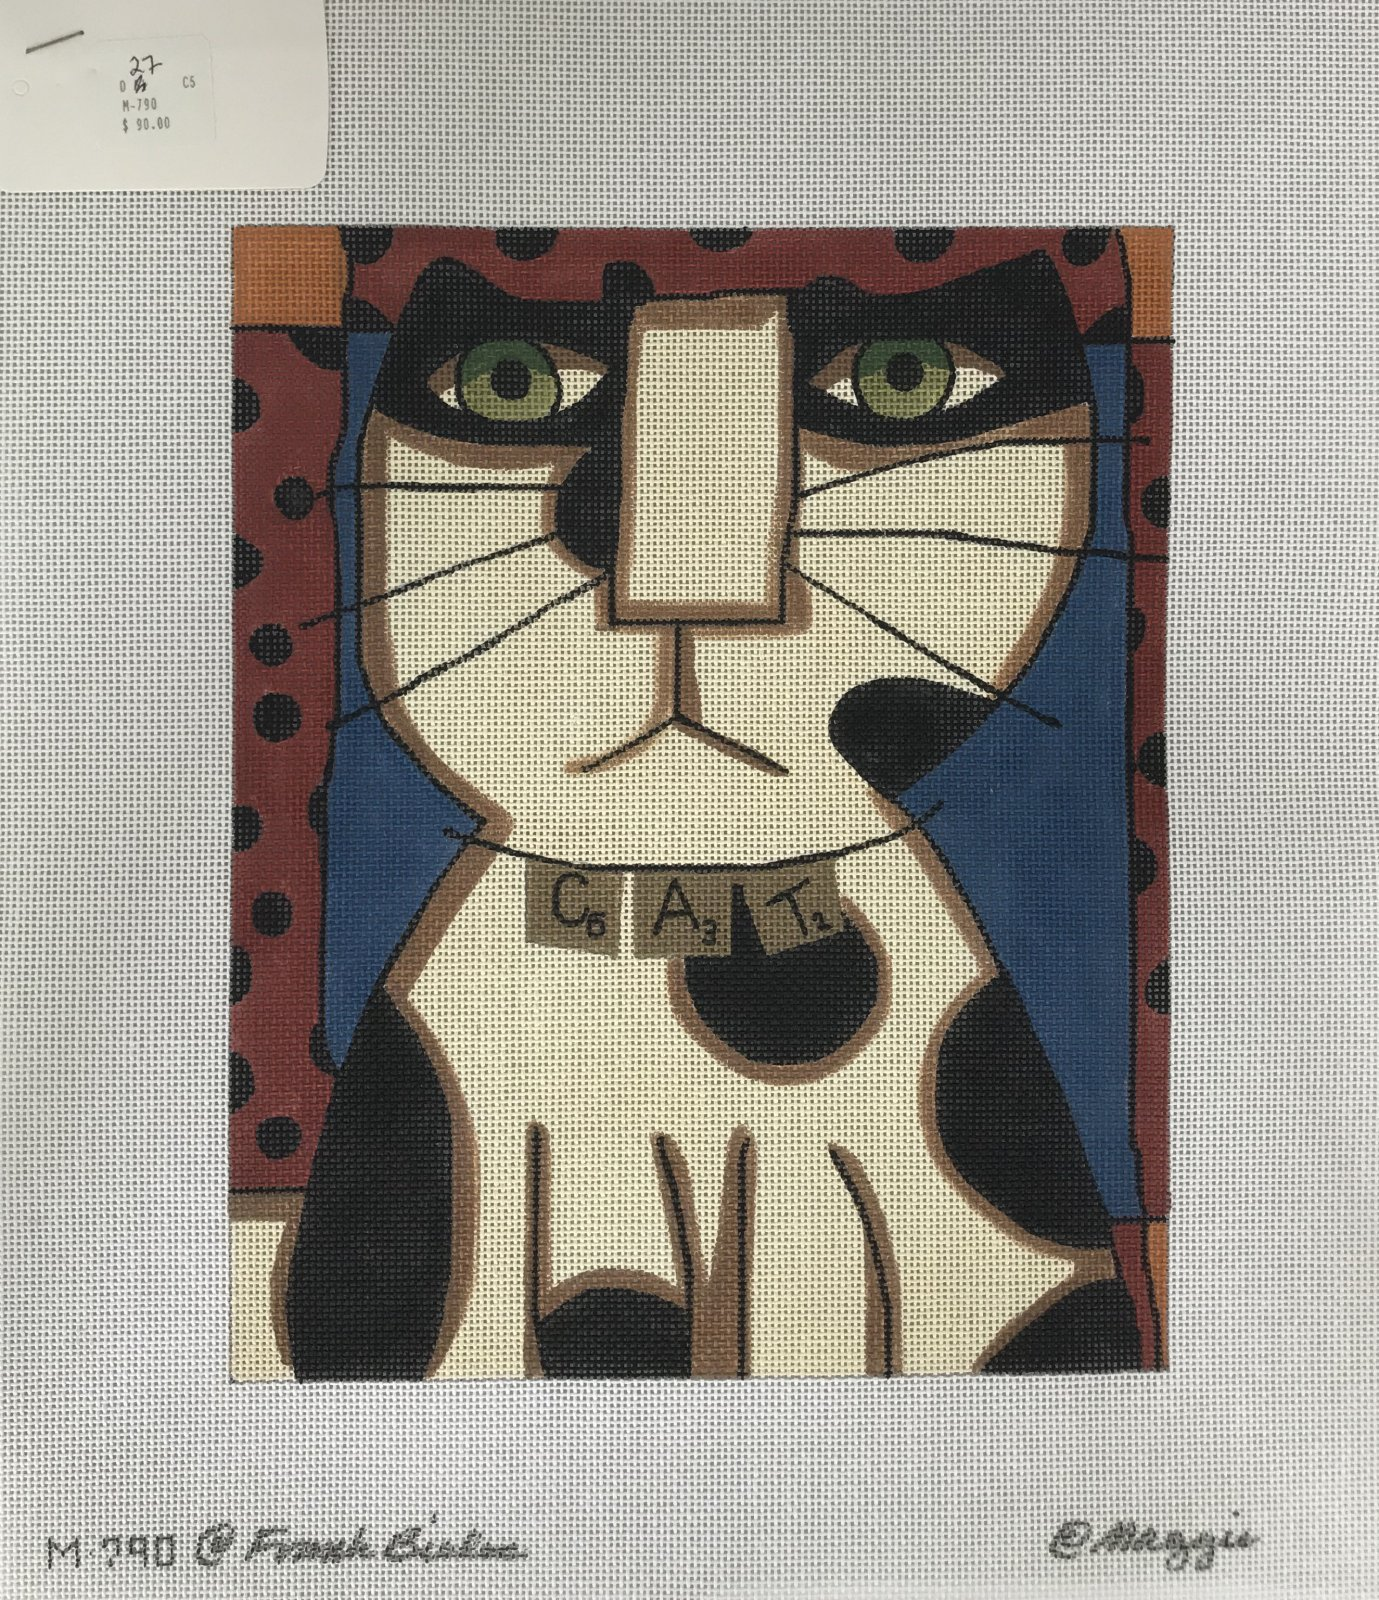 Frank Bielec/Maggie & Co: Cat Scrabble M-790